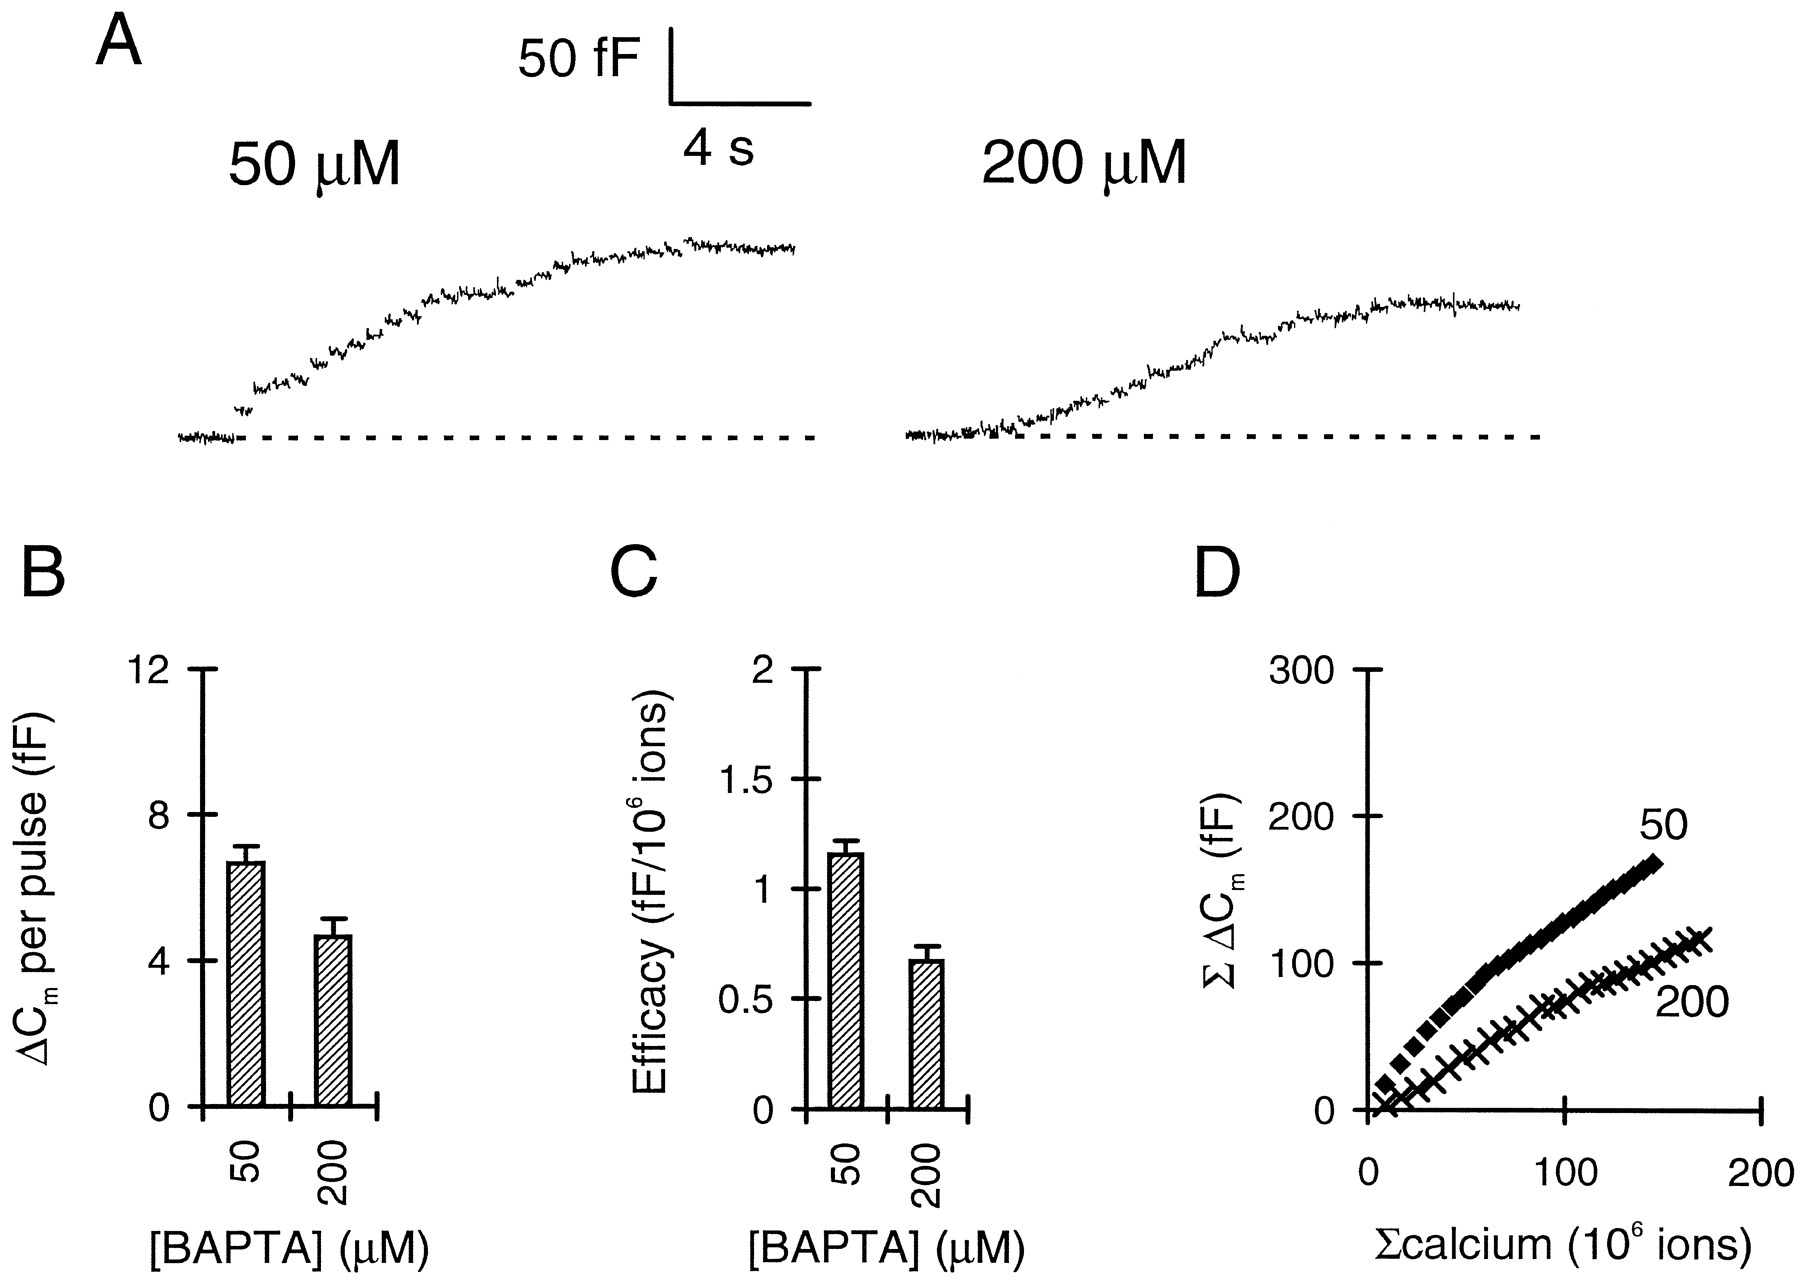 The Relation Of Exocytosis And Rapid Endocytosis To Calcium Entry